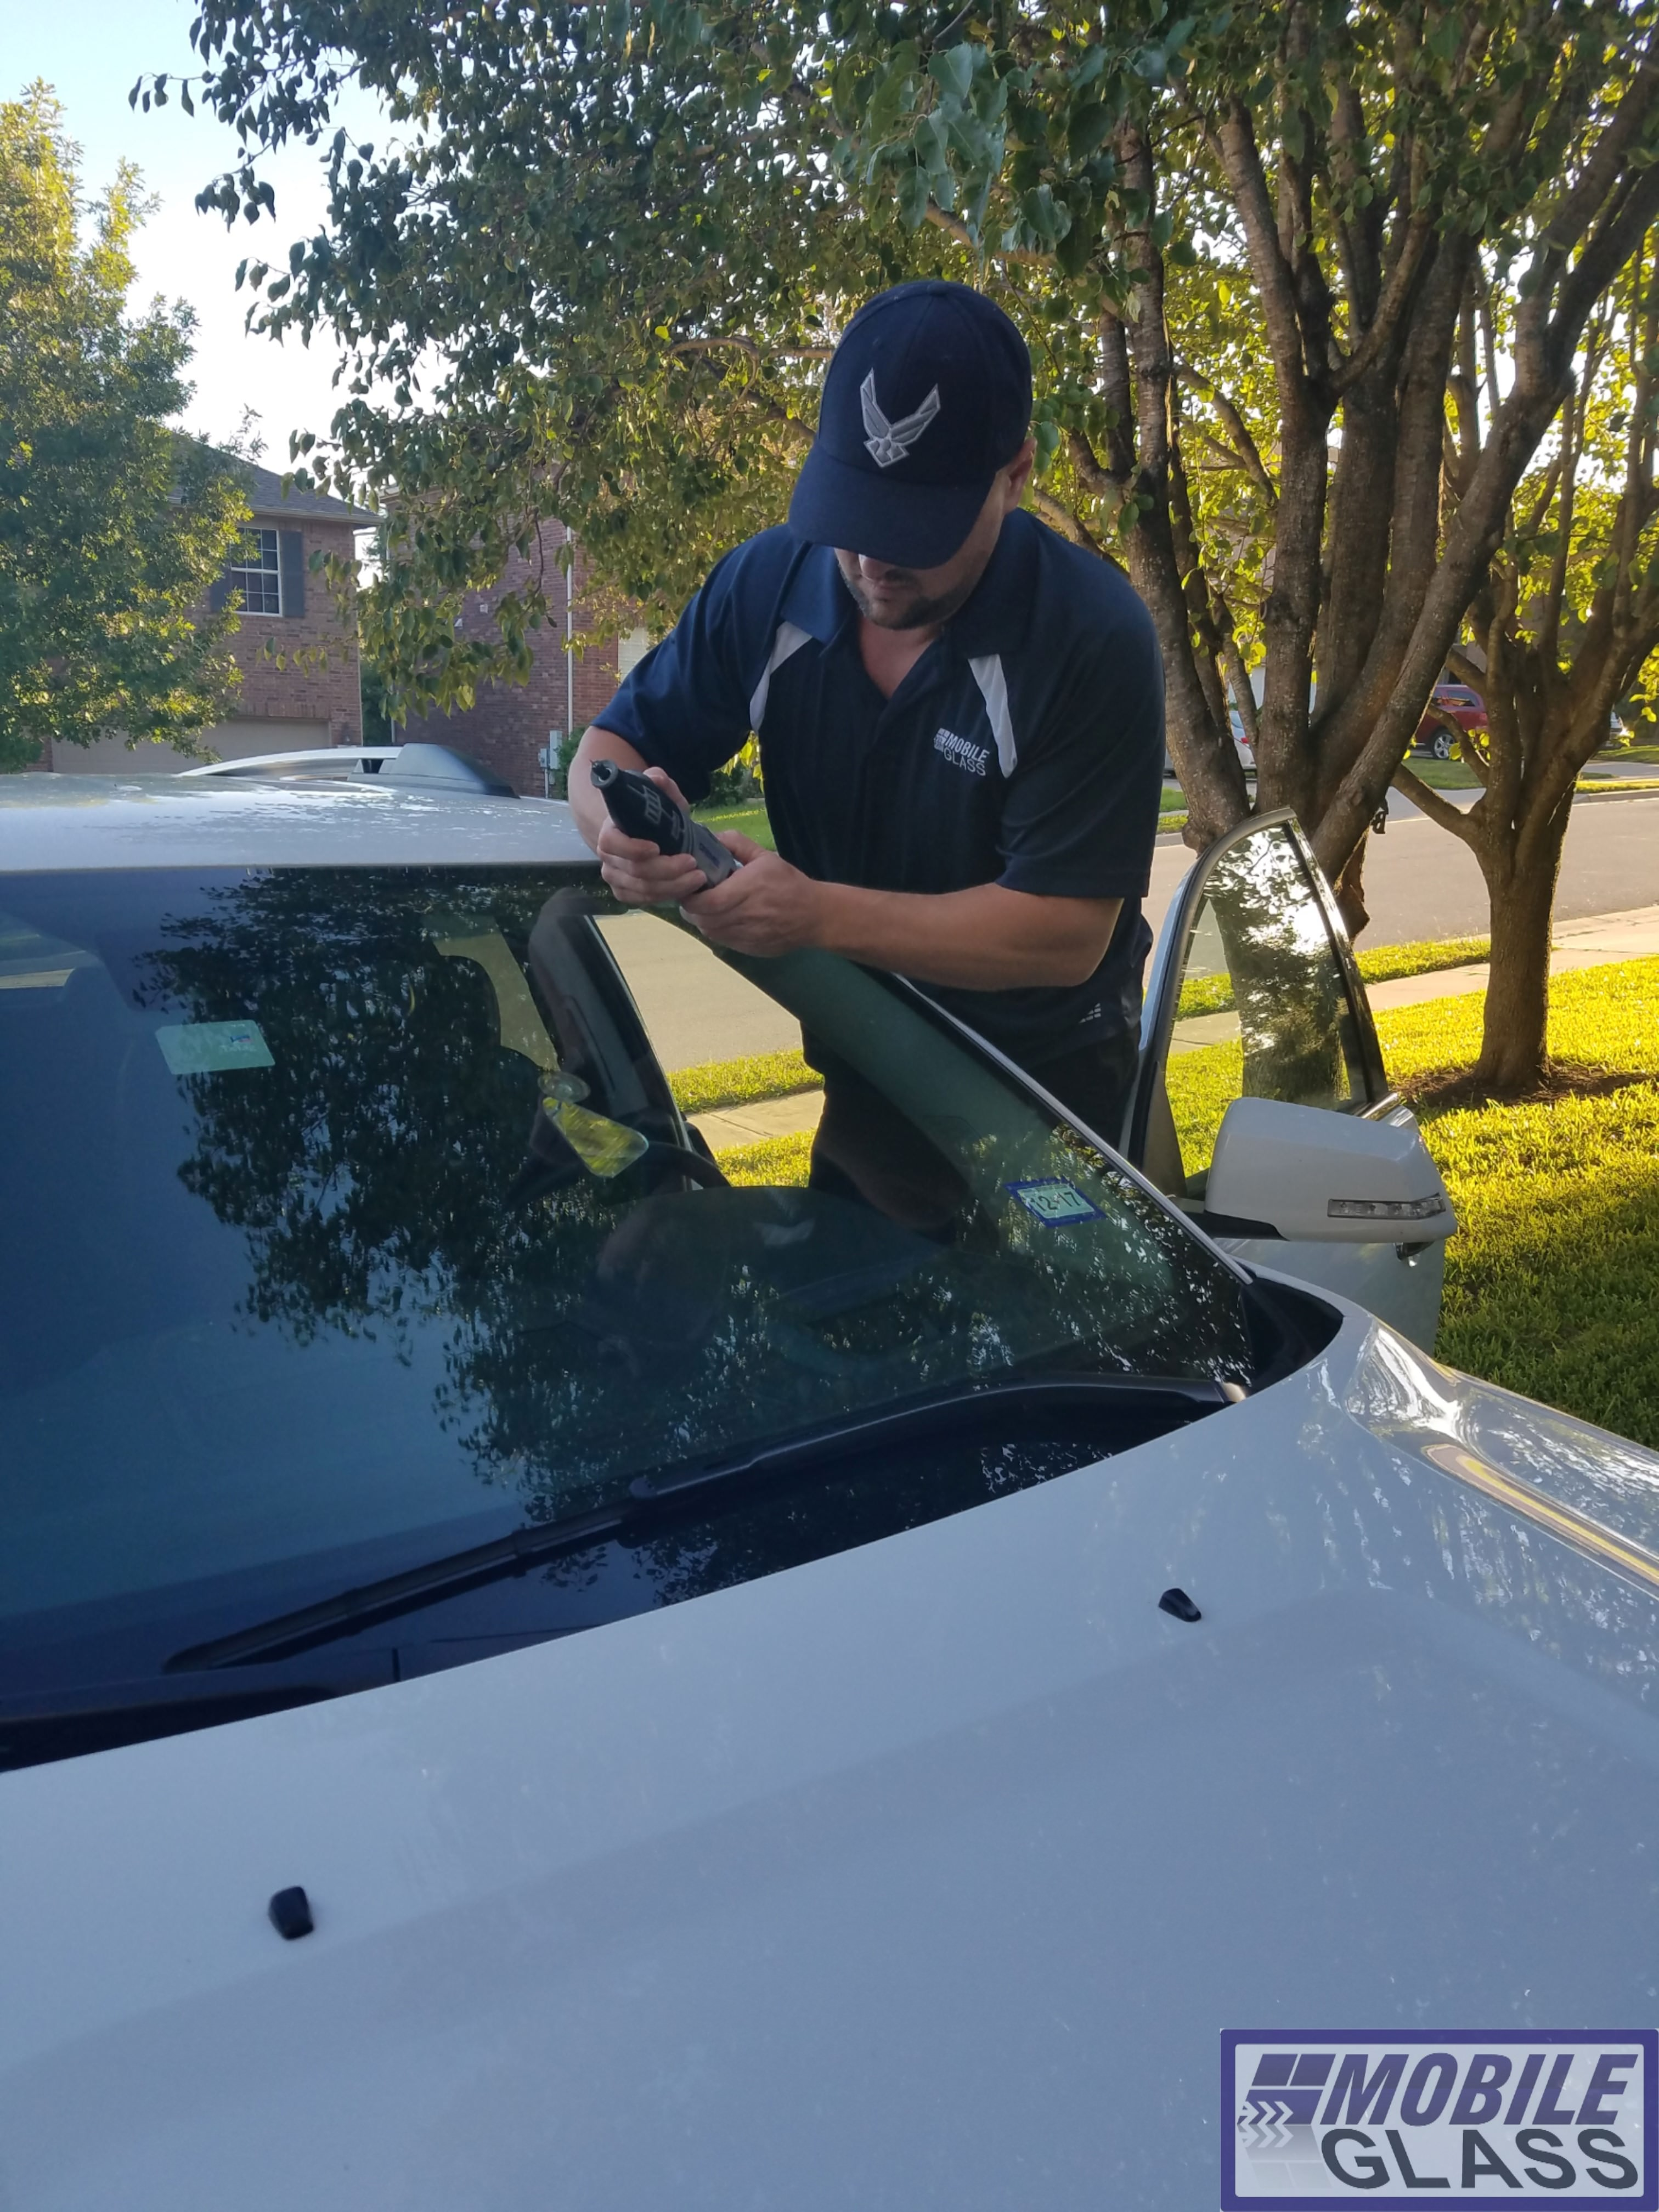 mobile windshield replacement in round rock by austin mobile glass. Black Bedroom Furniture Sets. Home Design Ideas